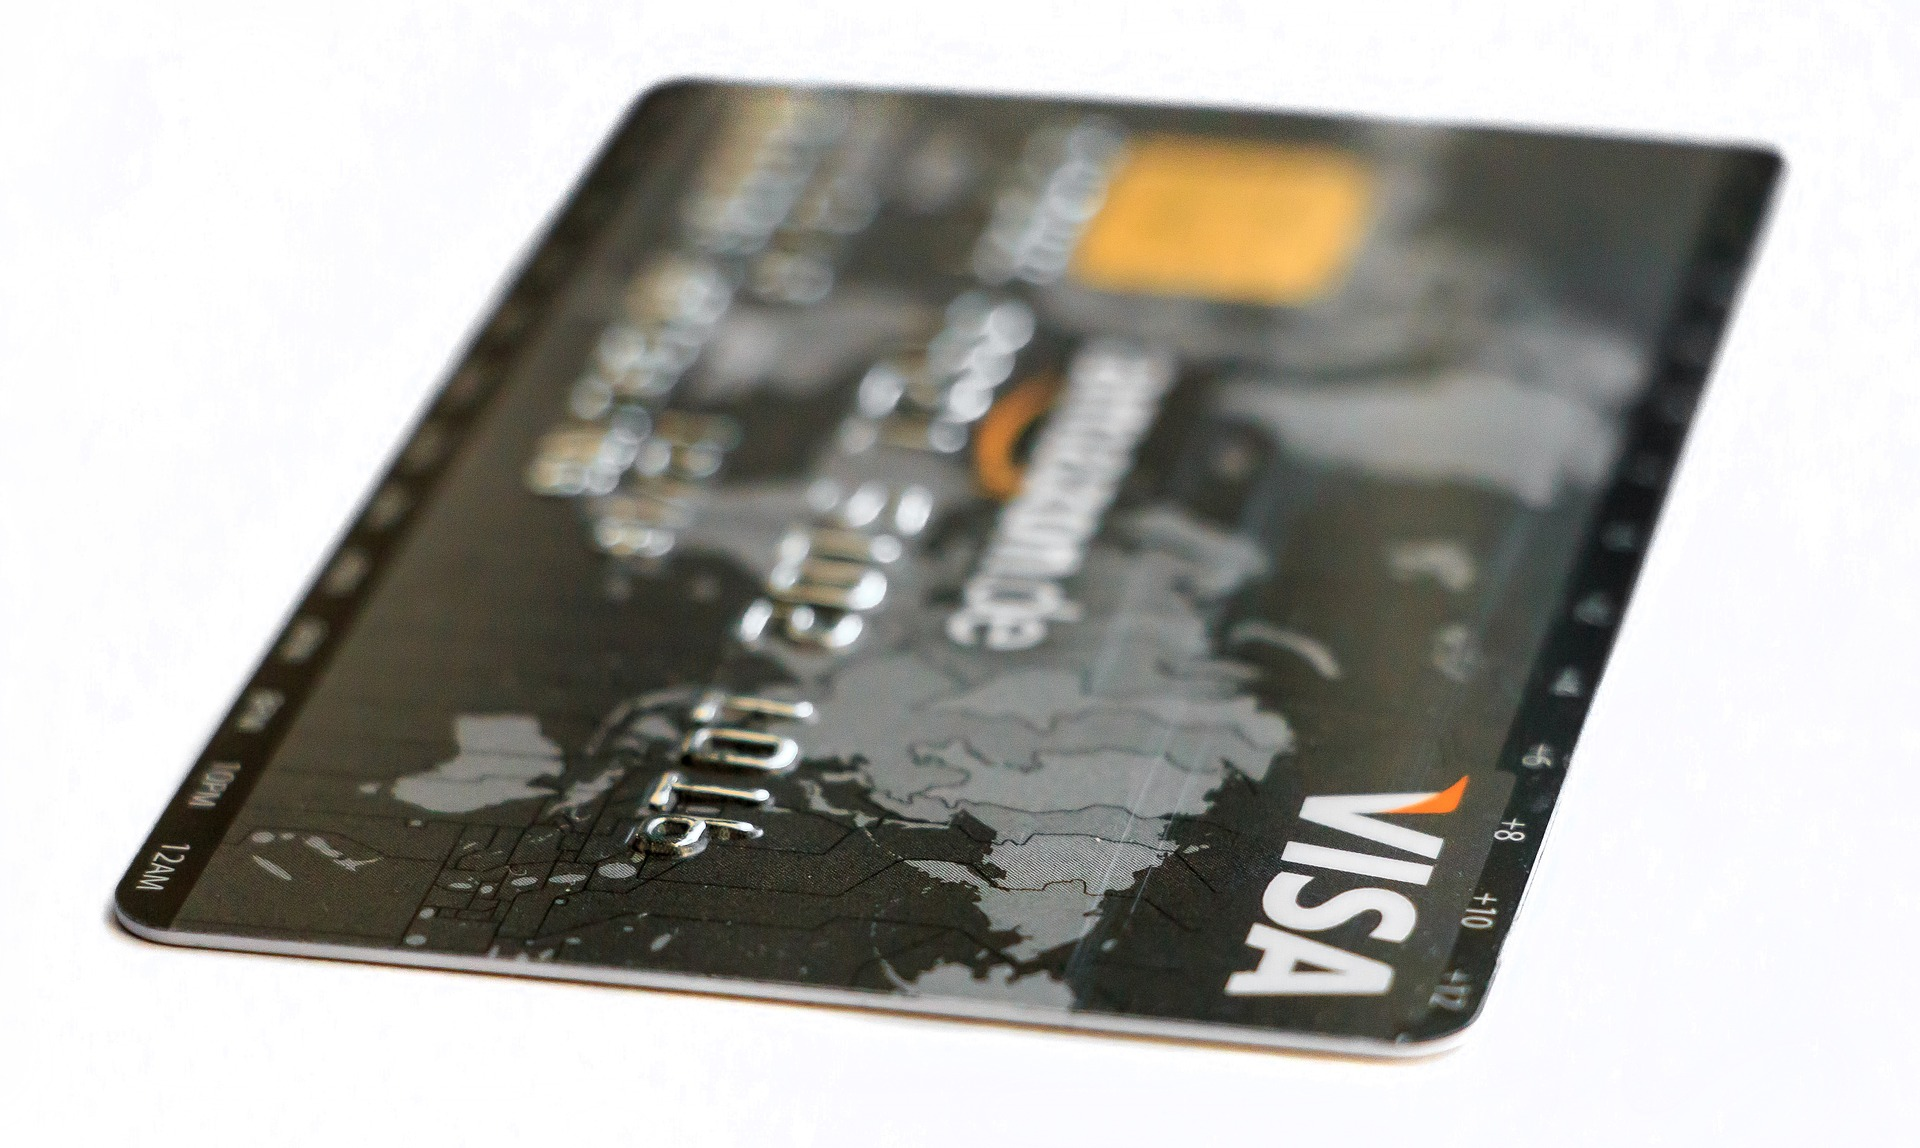 Visa Might Add Cryptocurrencies To Its Payments Network Says CEO